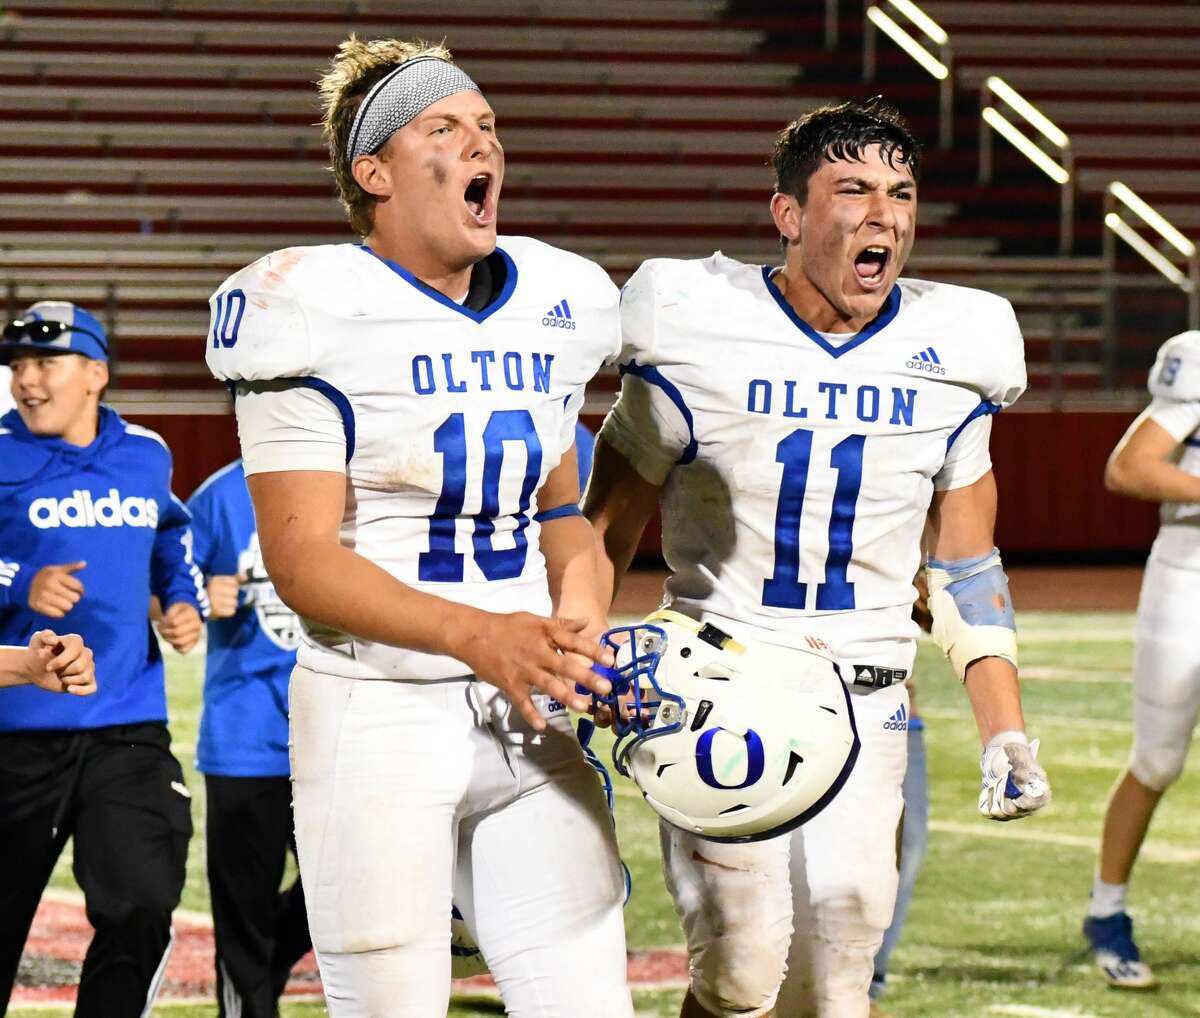 Seniors Jack Allcorn (10) and Aldo Vasquez celebrate Olton's 35-33 win over New Deal in their Class 2A Division I bi-district football game on Nov. 12, 2020 in Levelland.